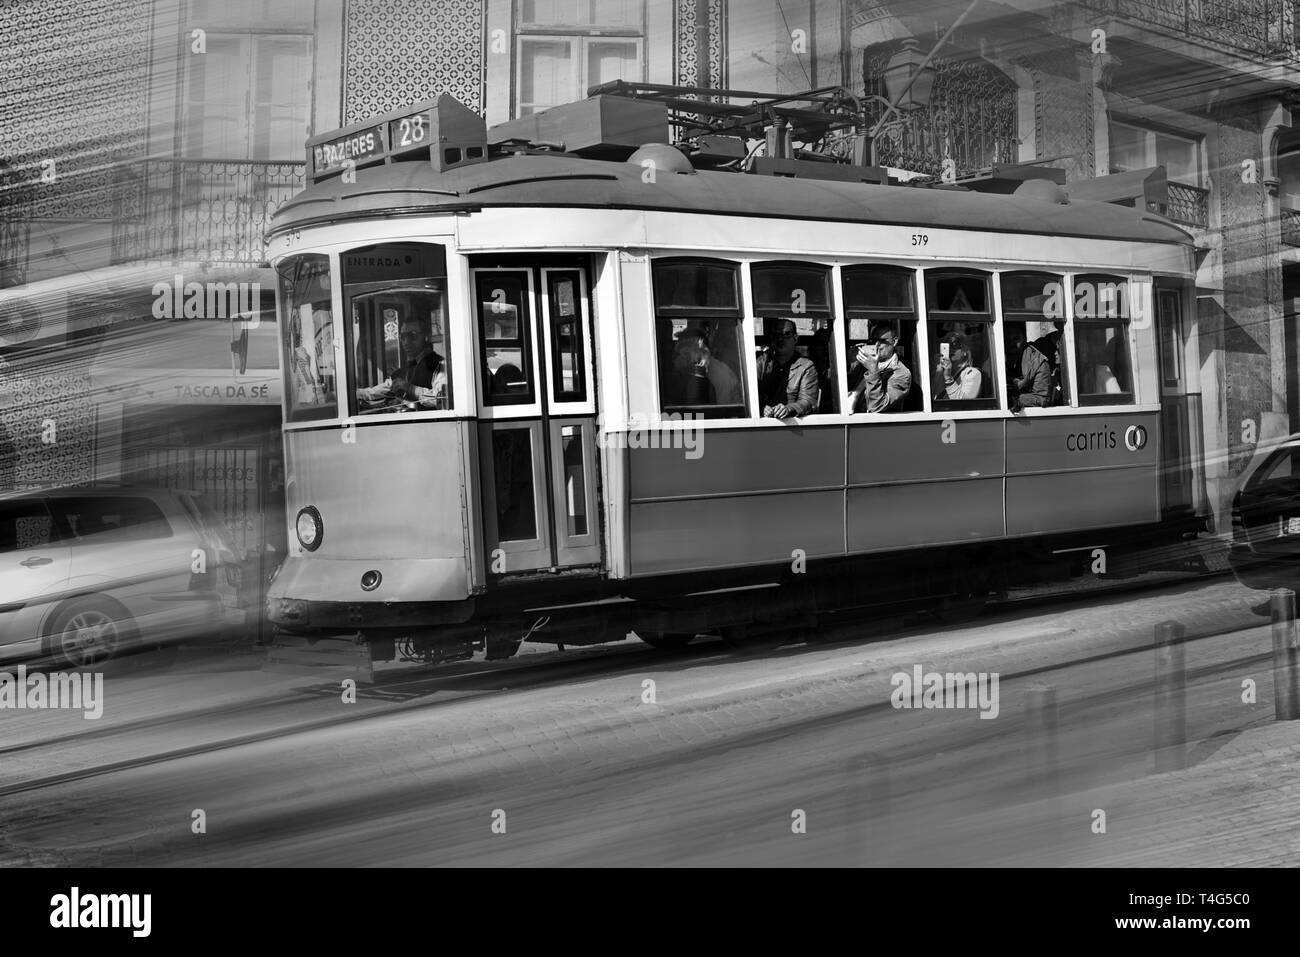 Portugal, Lisbon, Alfama, tram, tramway No. 28, famous, sightseeing, movement, tram in movement, people, passengers, no model releases, travel, tourism, portuguese capital, black and white, black and white photography, nostalgia, nostalgic, charming, stree   usage worldwide - Stock Image